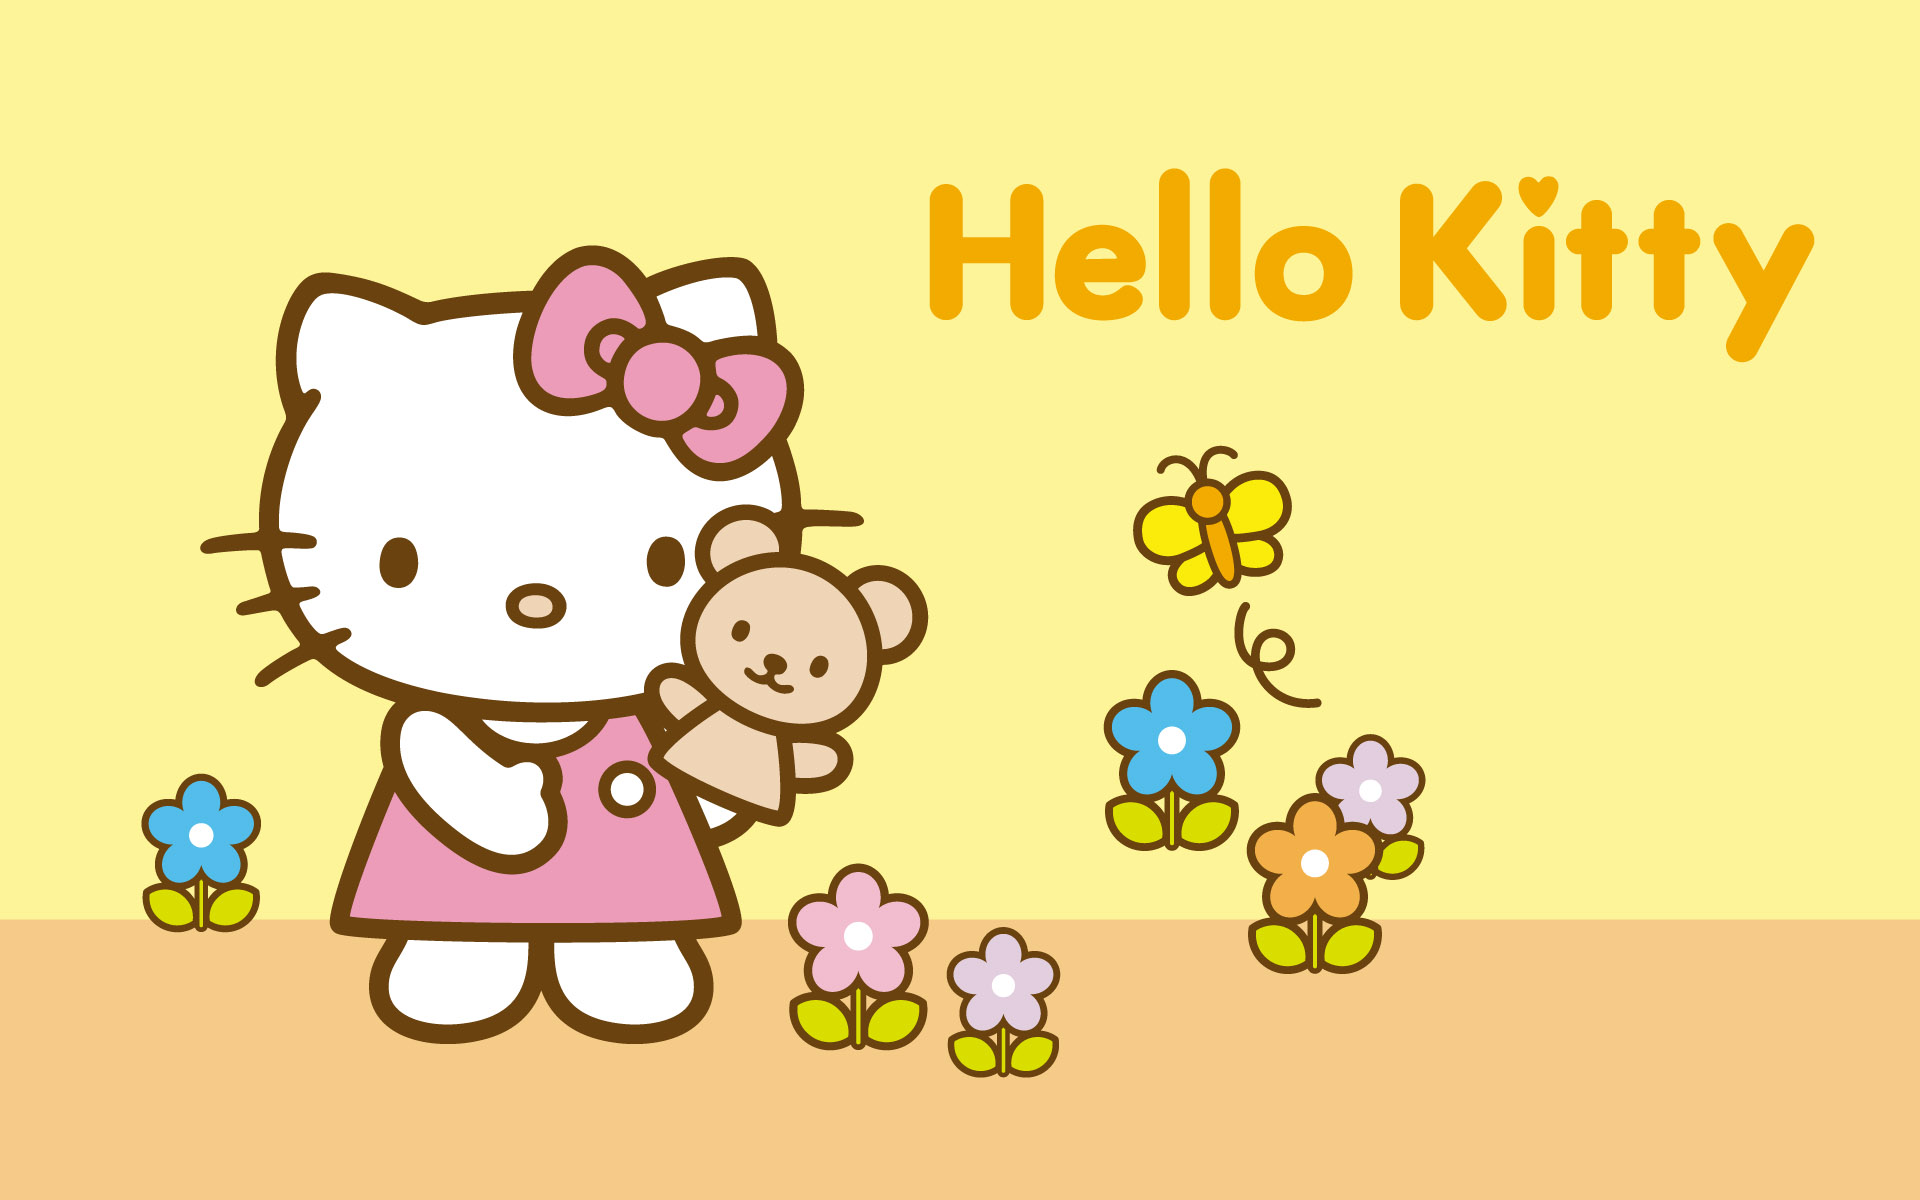 Wallpapers  Hello Kitty Wallpaper (28941578)  Fanpop